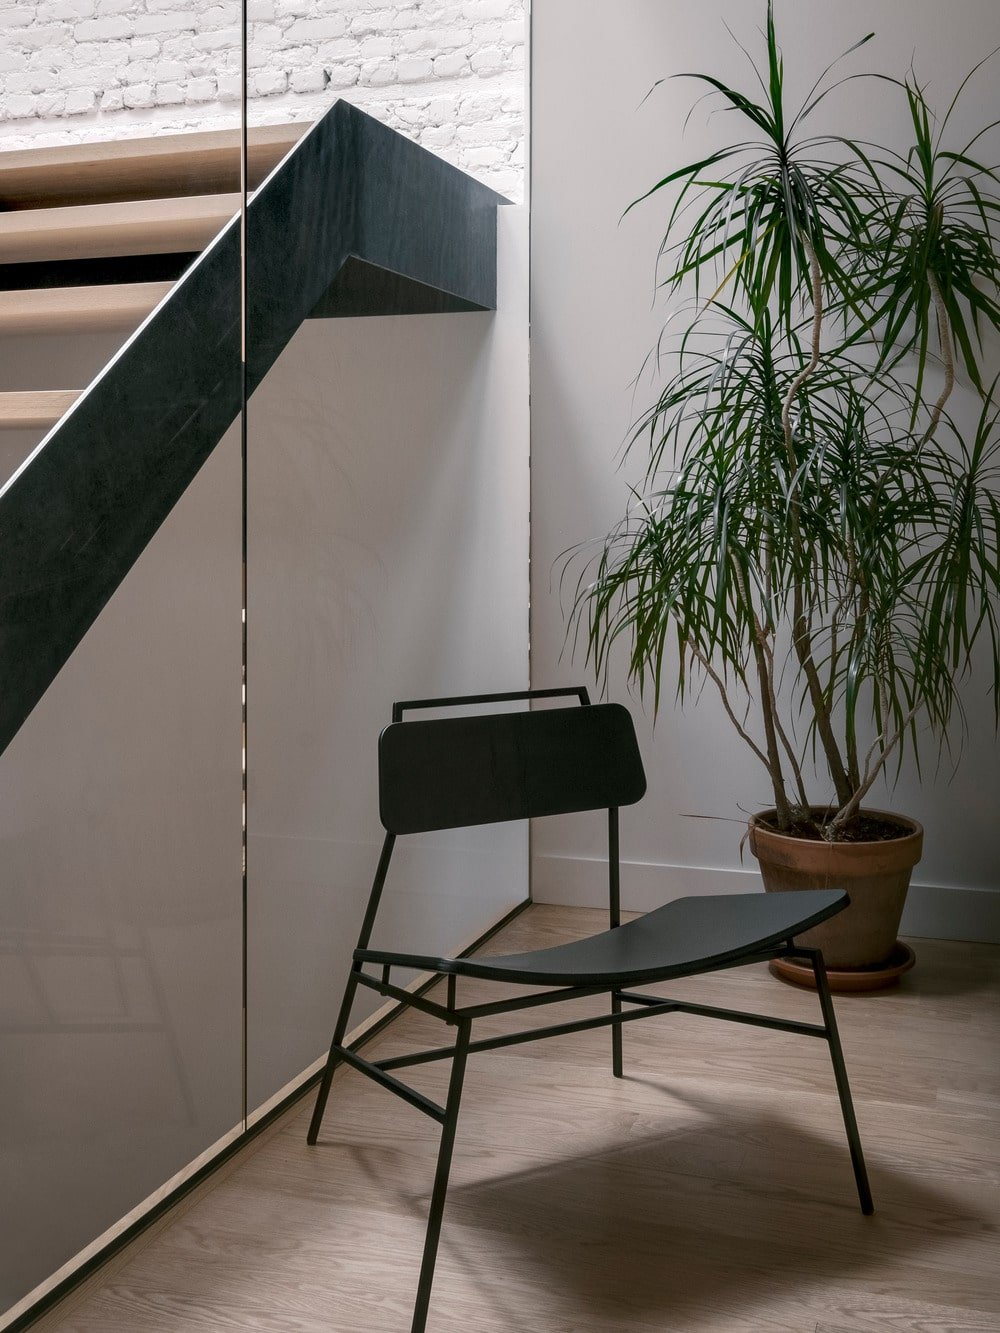 On the side of the glass wall of the staircase has a chair for a reading nook complemented by a potted plant.